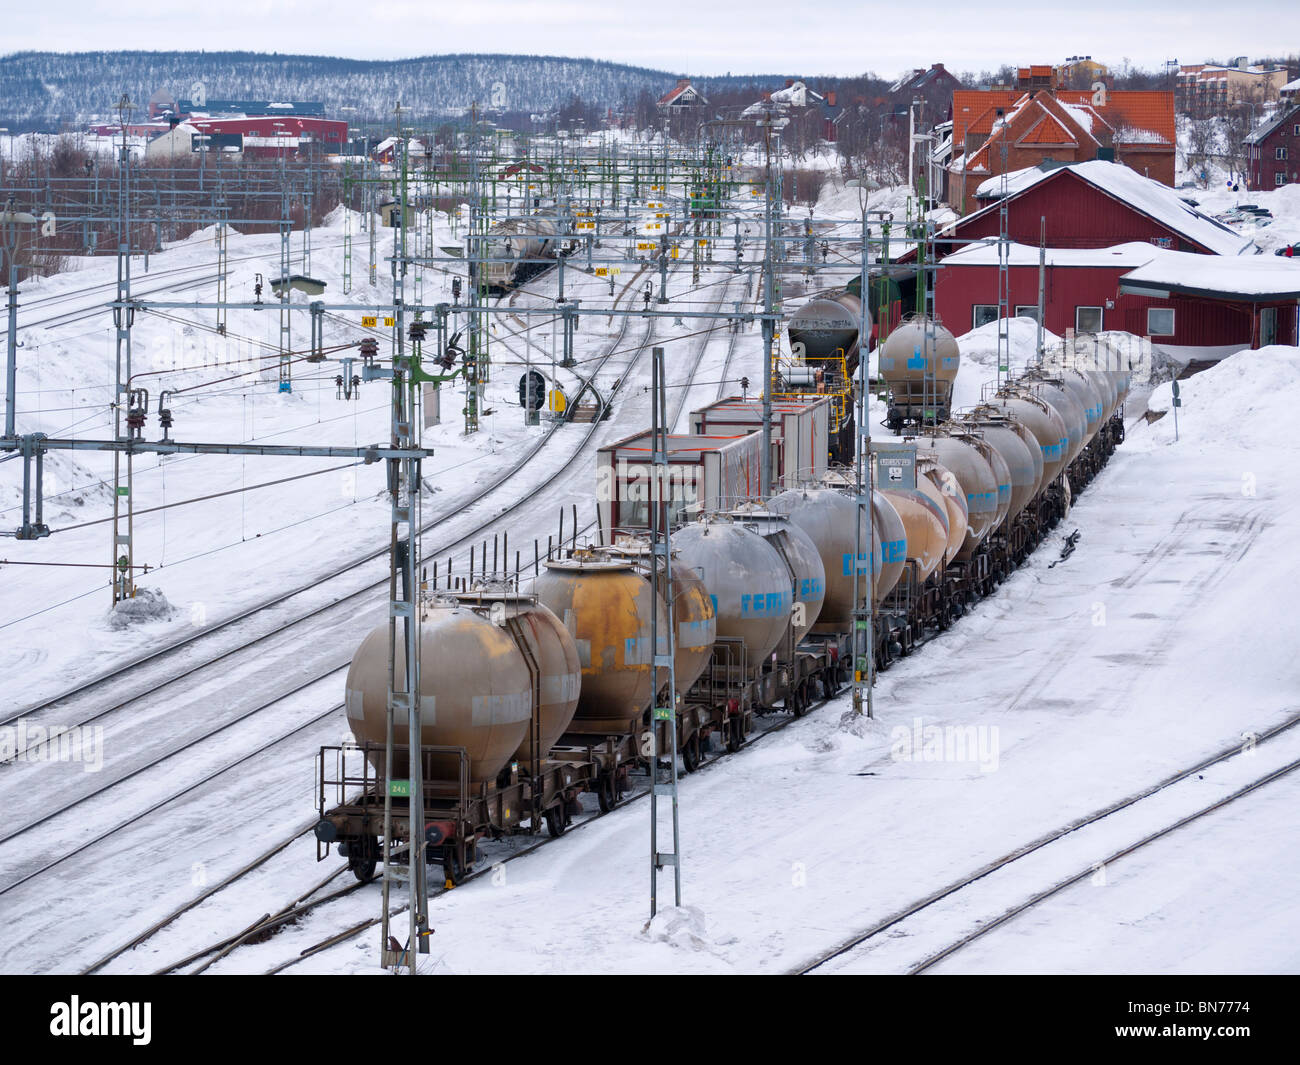 The railway station of Kiruna in Lapland, Northern Sweden. - Stock Image